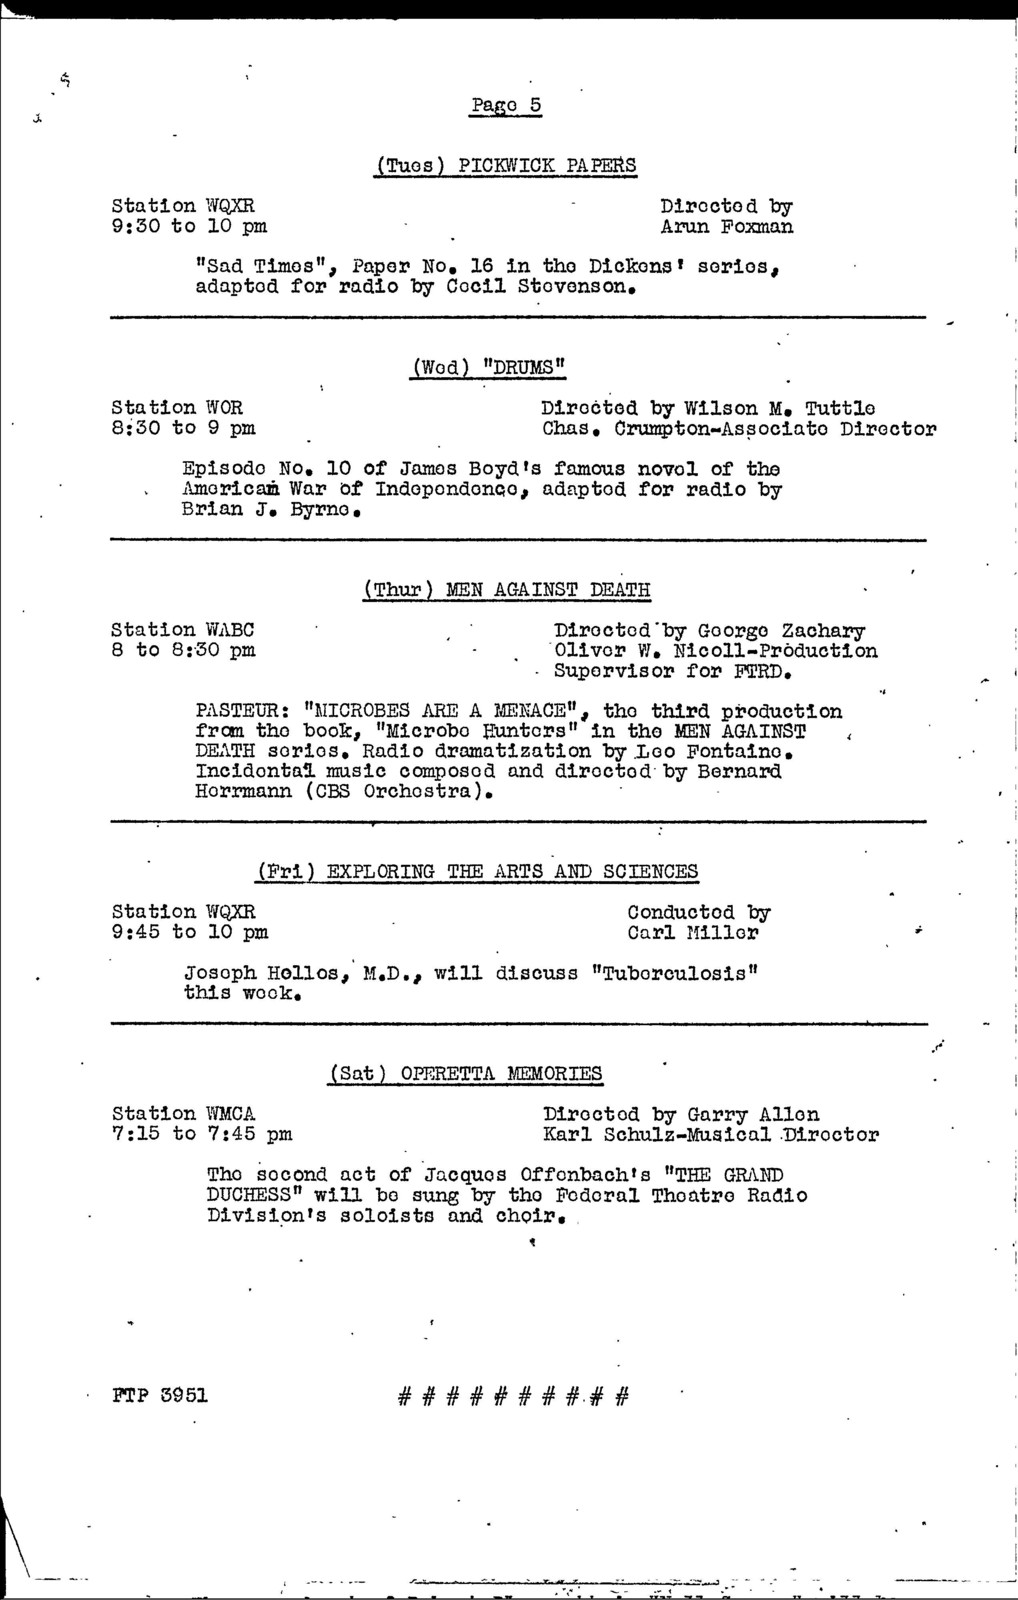 Advertising and Publicity - Jul 1938 - WPA-FTP Presentations - Weekly Schedules - NYC